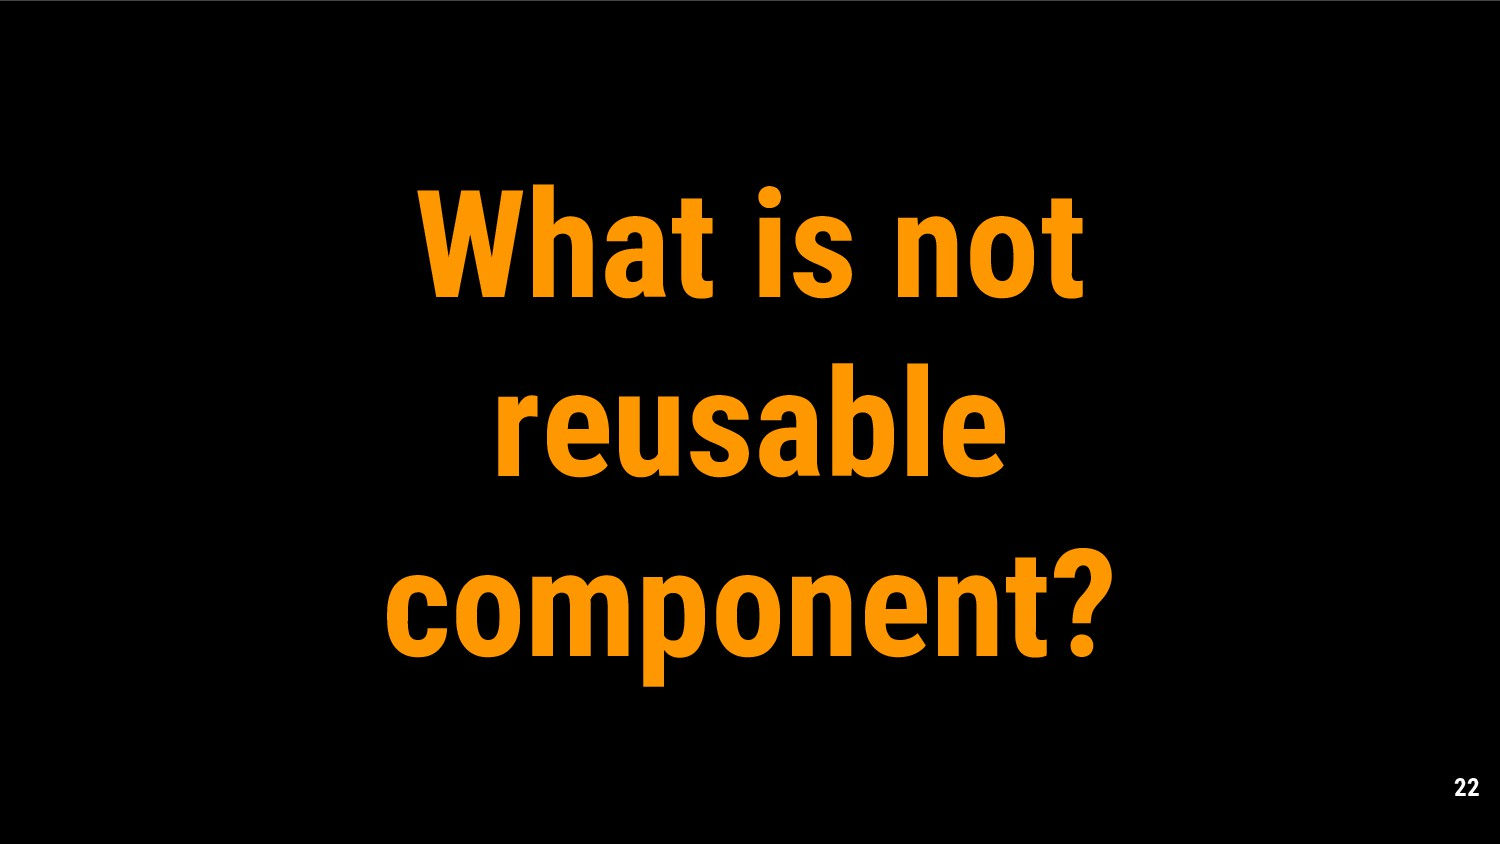 22 What is not reusable component?